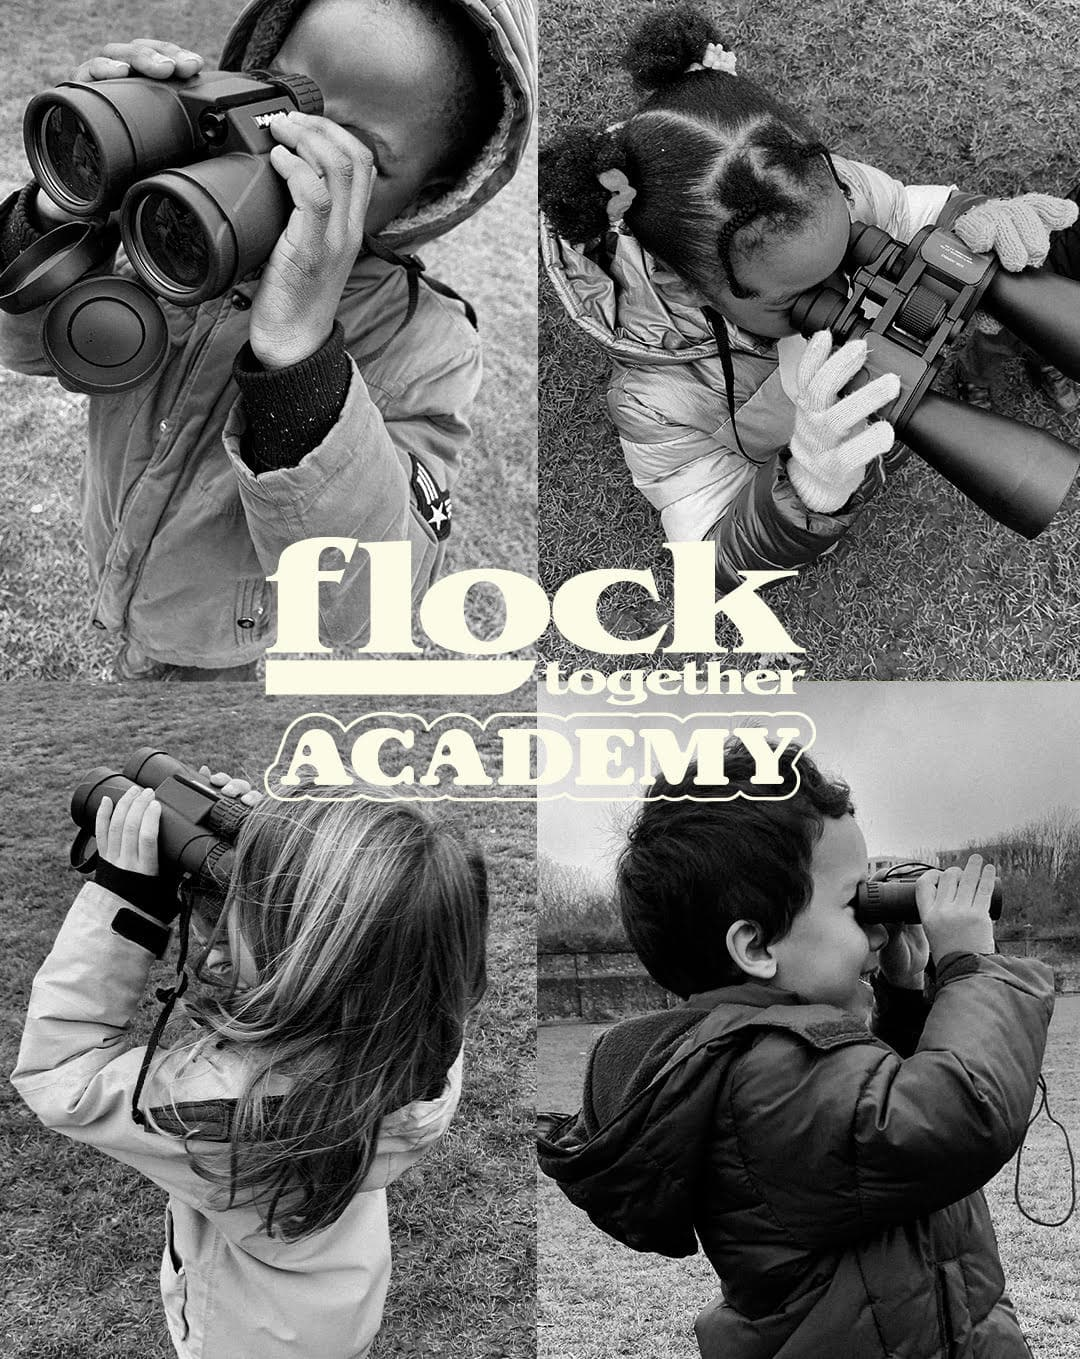 Every child is a birder. They just don't know it yet. Flock Together Academy will be a place to inspire the next generation of young birders.